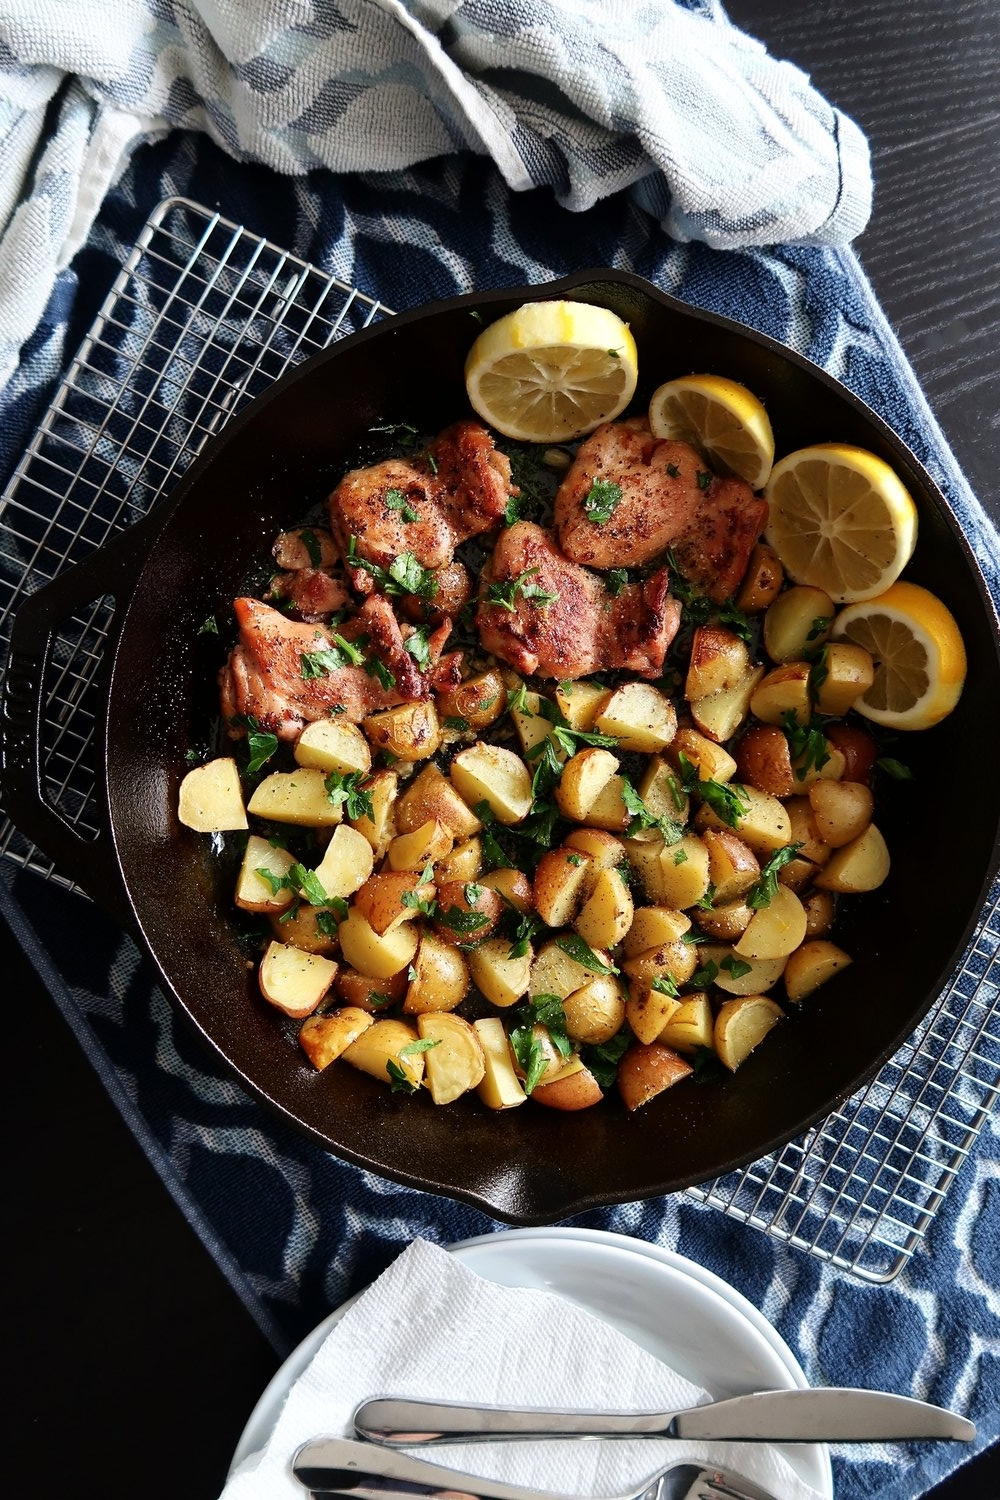 Lemon Garlic Chicken with Baby Potatoes in a cast iron skillet.